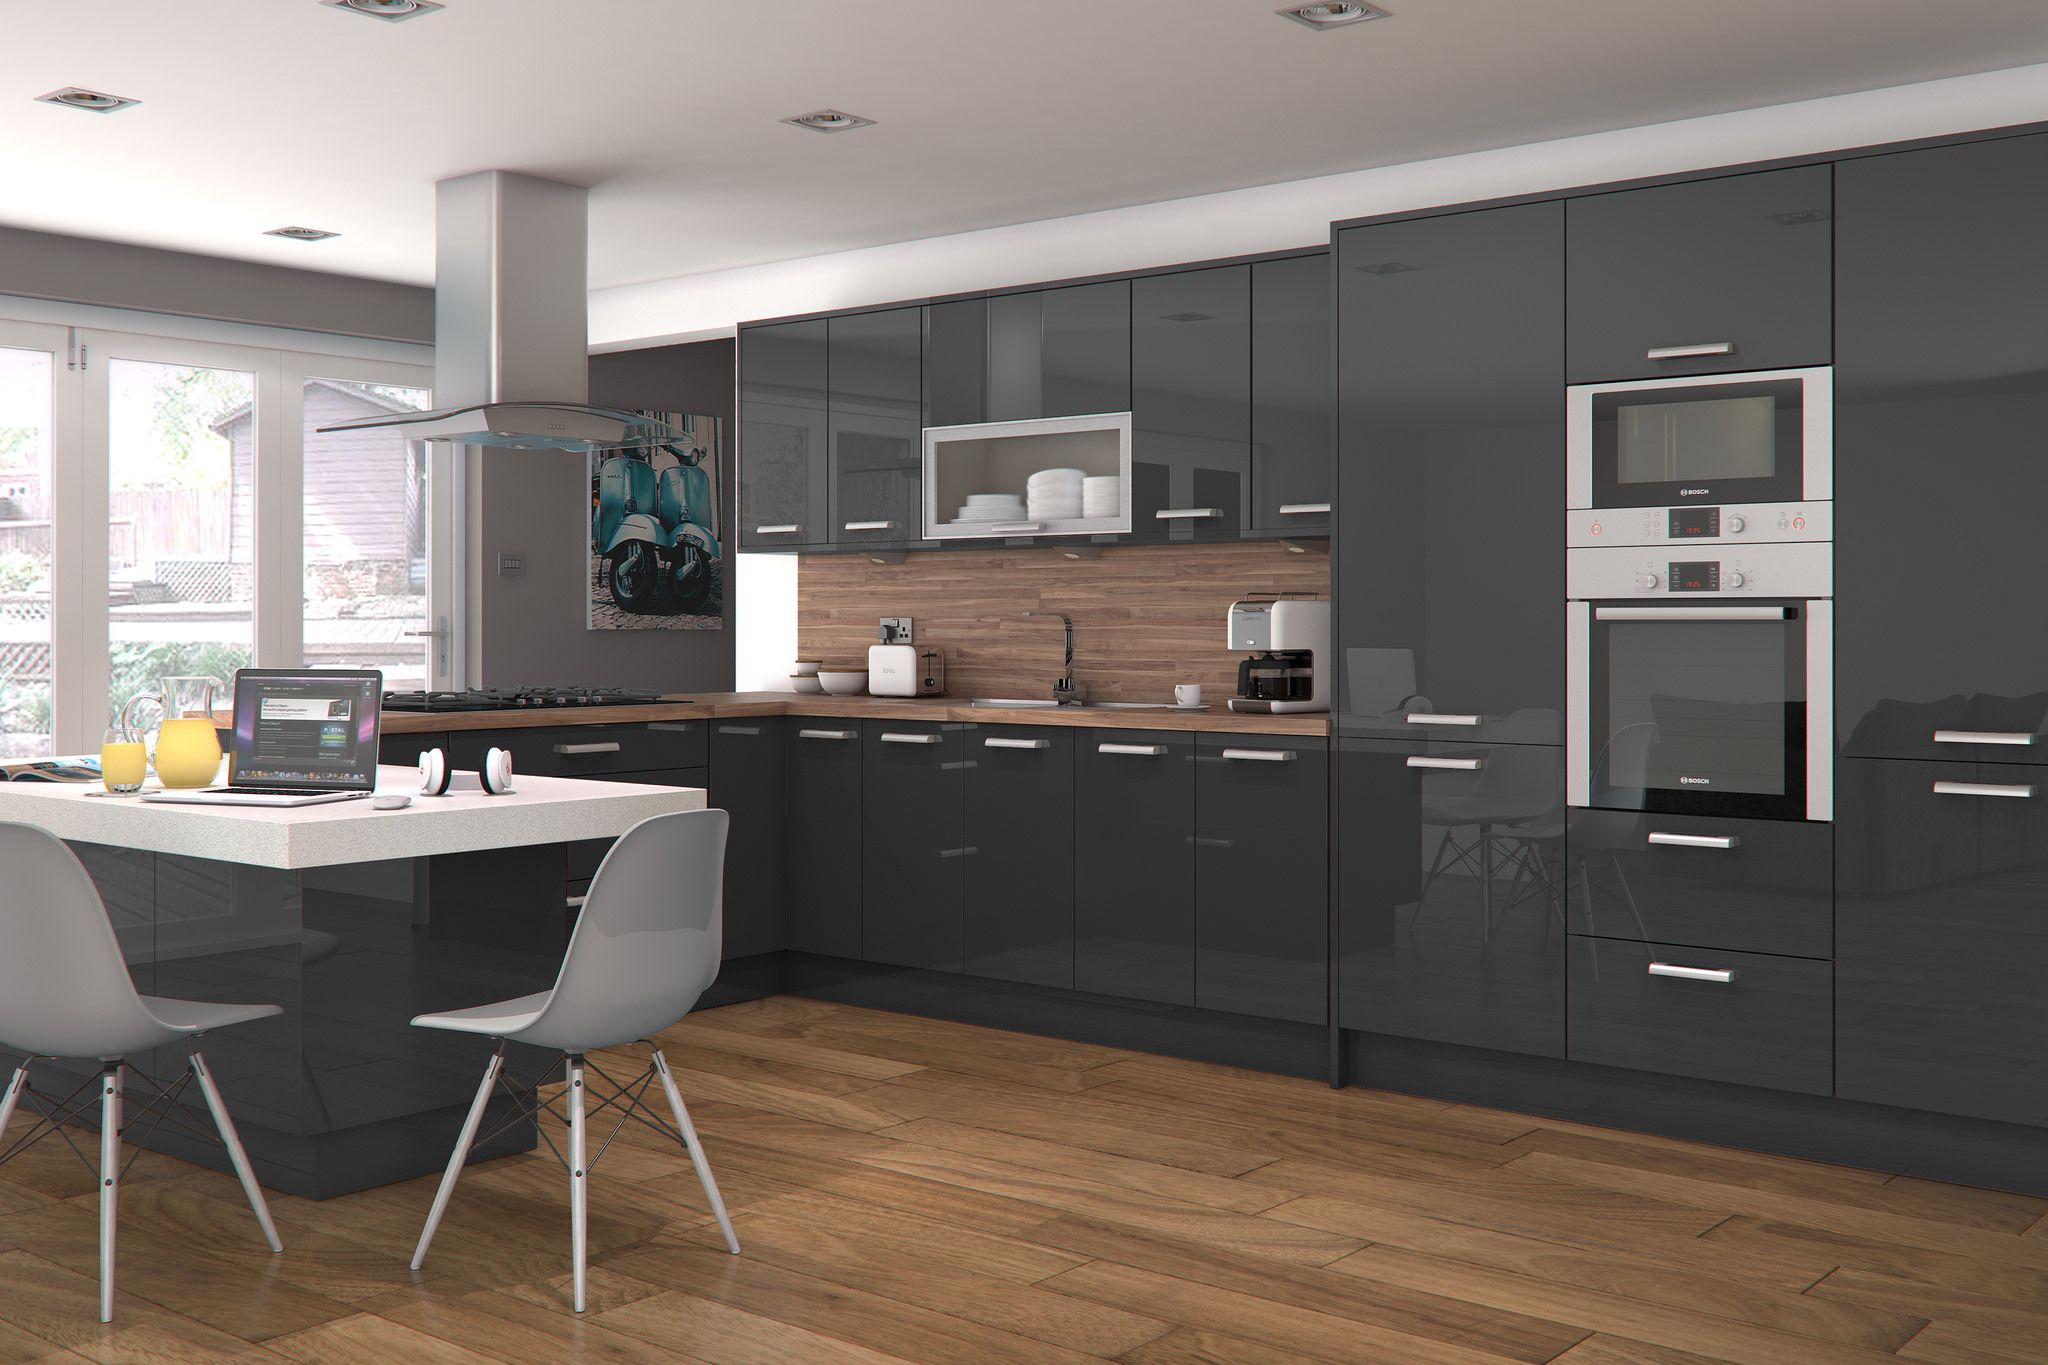 Innova Altino Graphite High Gloss Kitchen Modern Kitchen Interiors Modern Kitchen Interior Design Kitchen